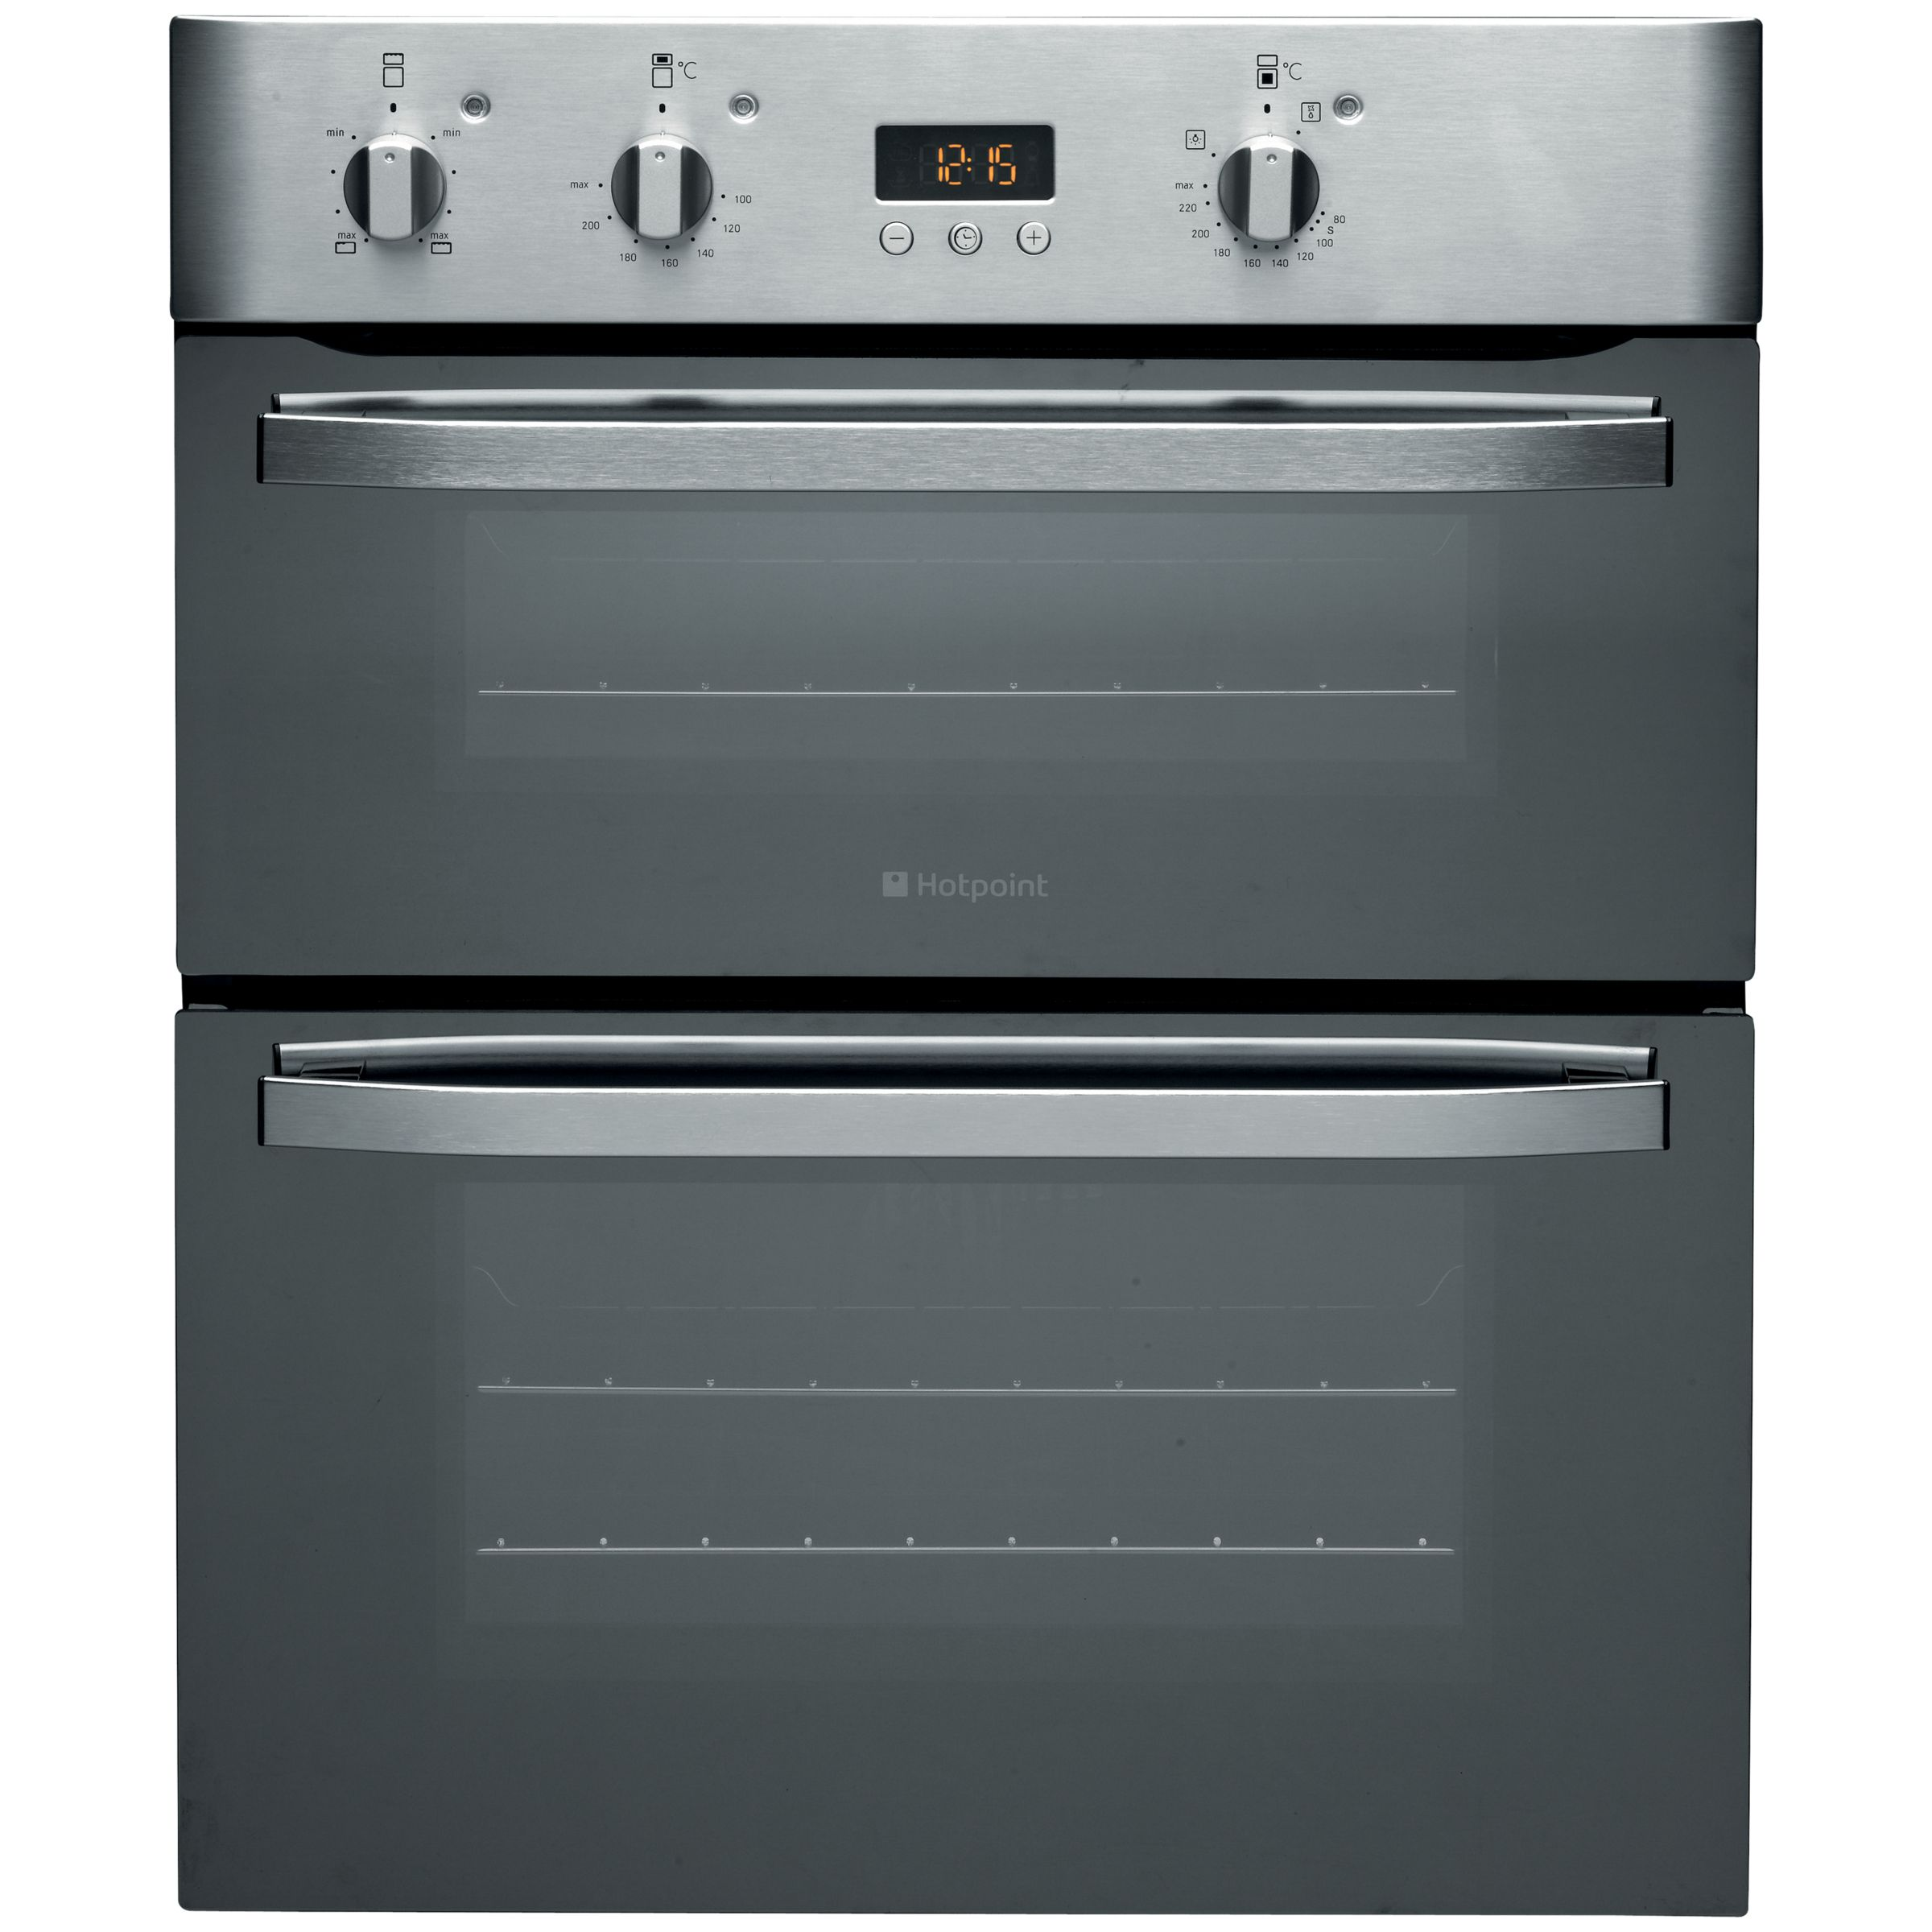 Hotpoint UHS53XS Double Electric Oven Mirrored Stainless Steel